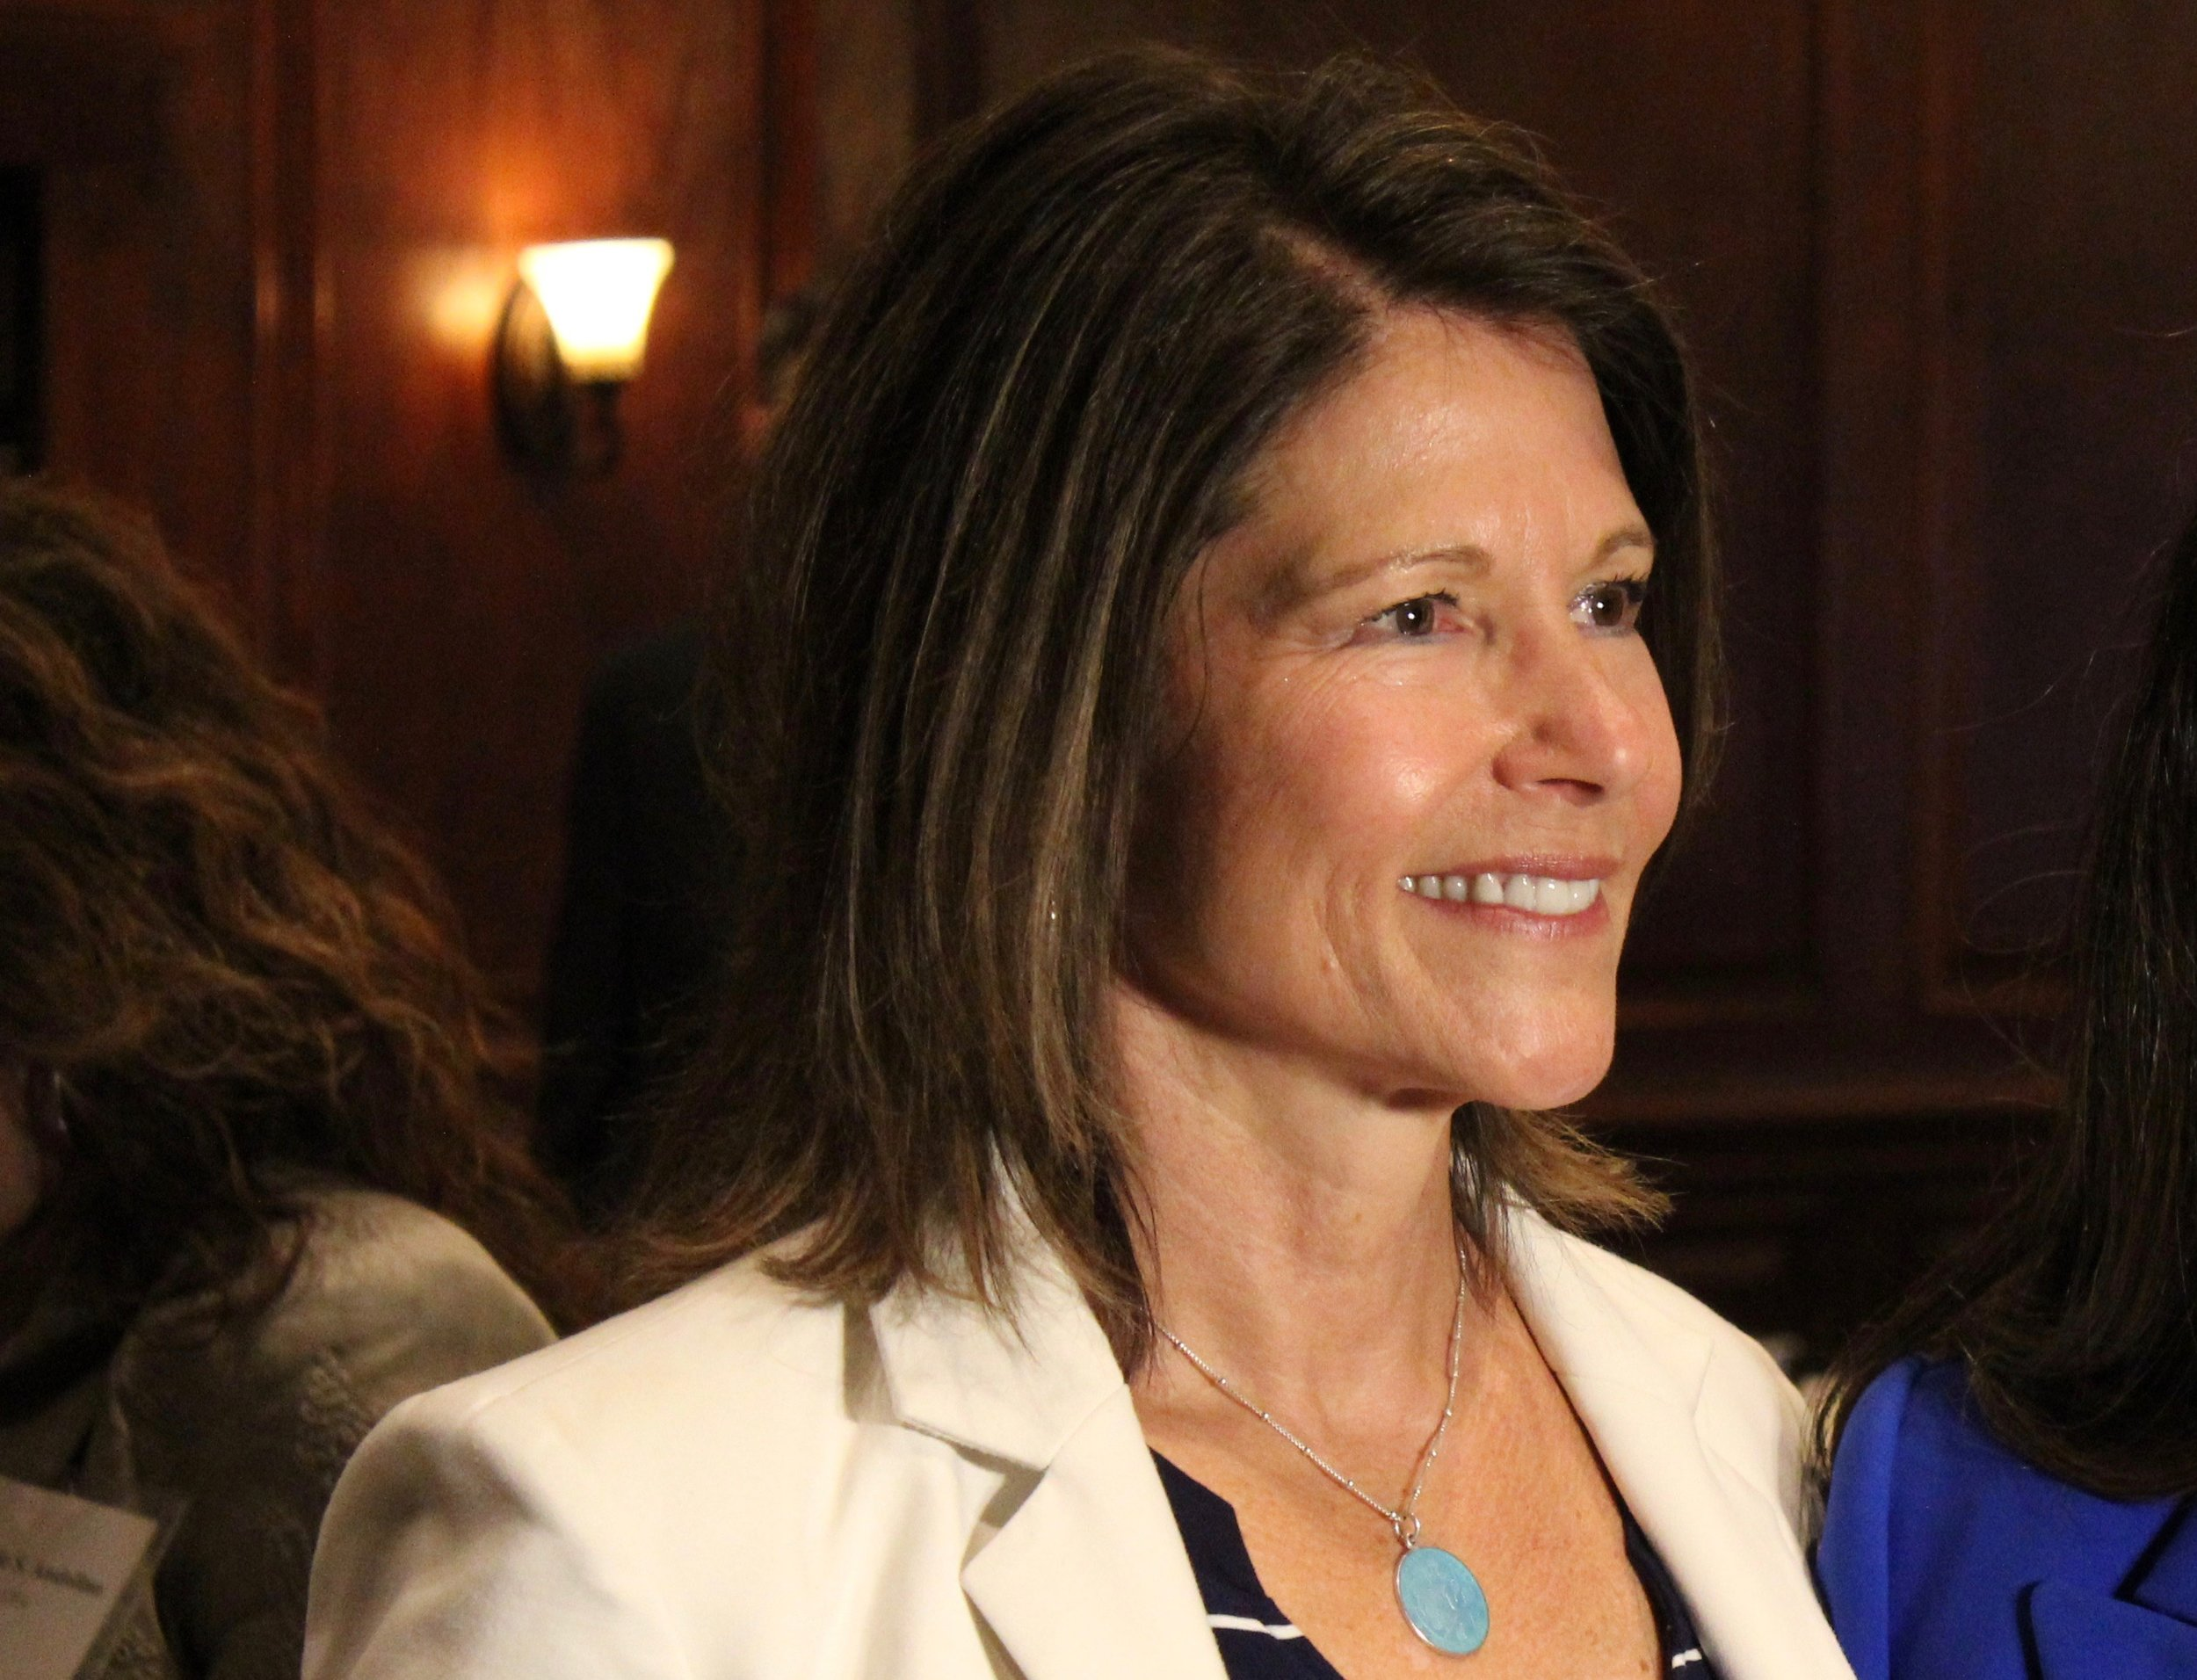 U.S. Rep. Cheri Bustos appears at the City Club of Chicago Monday. (One Illinois/Ted Cox)